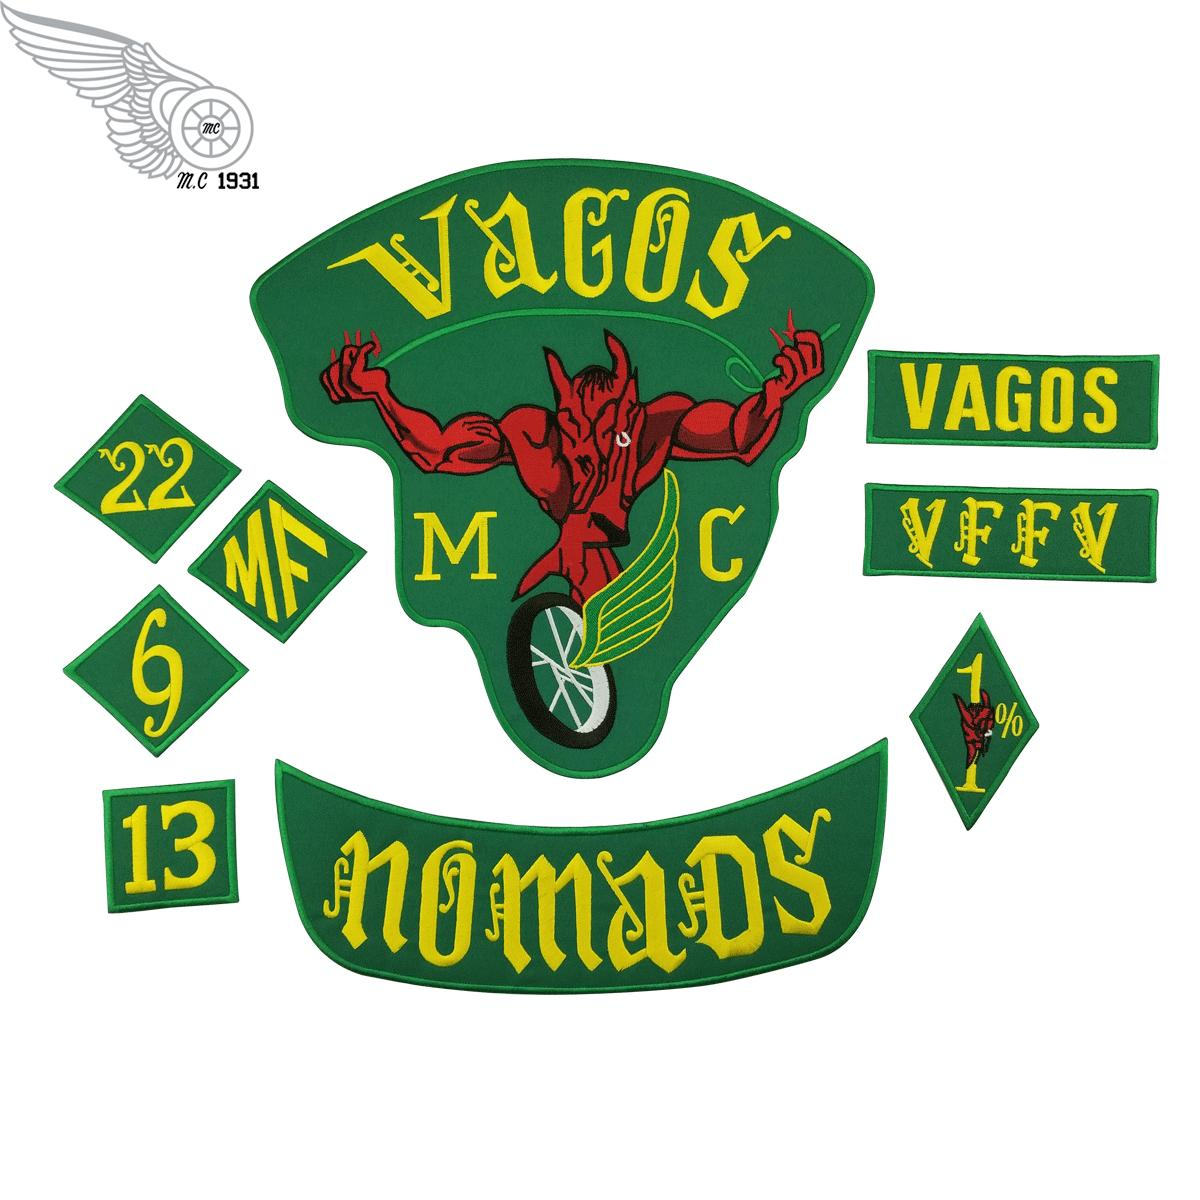 Fashion Vagos 1% MC Full Of Jacket Vest Embroidered Patch Green Motorcycle Biker Vest Patch Rock Punk Patch 9 Pcs/ Lot Free Shipping